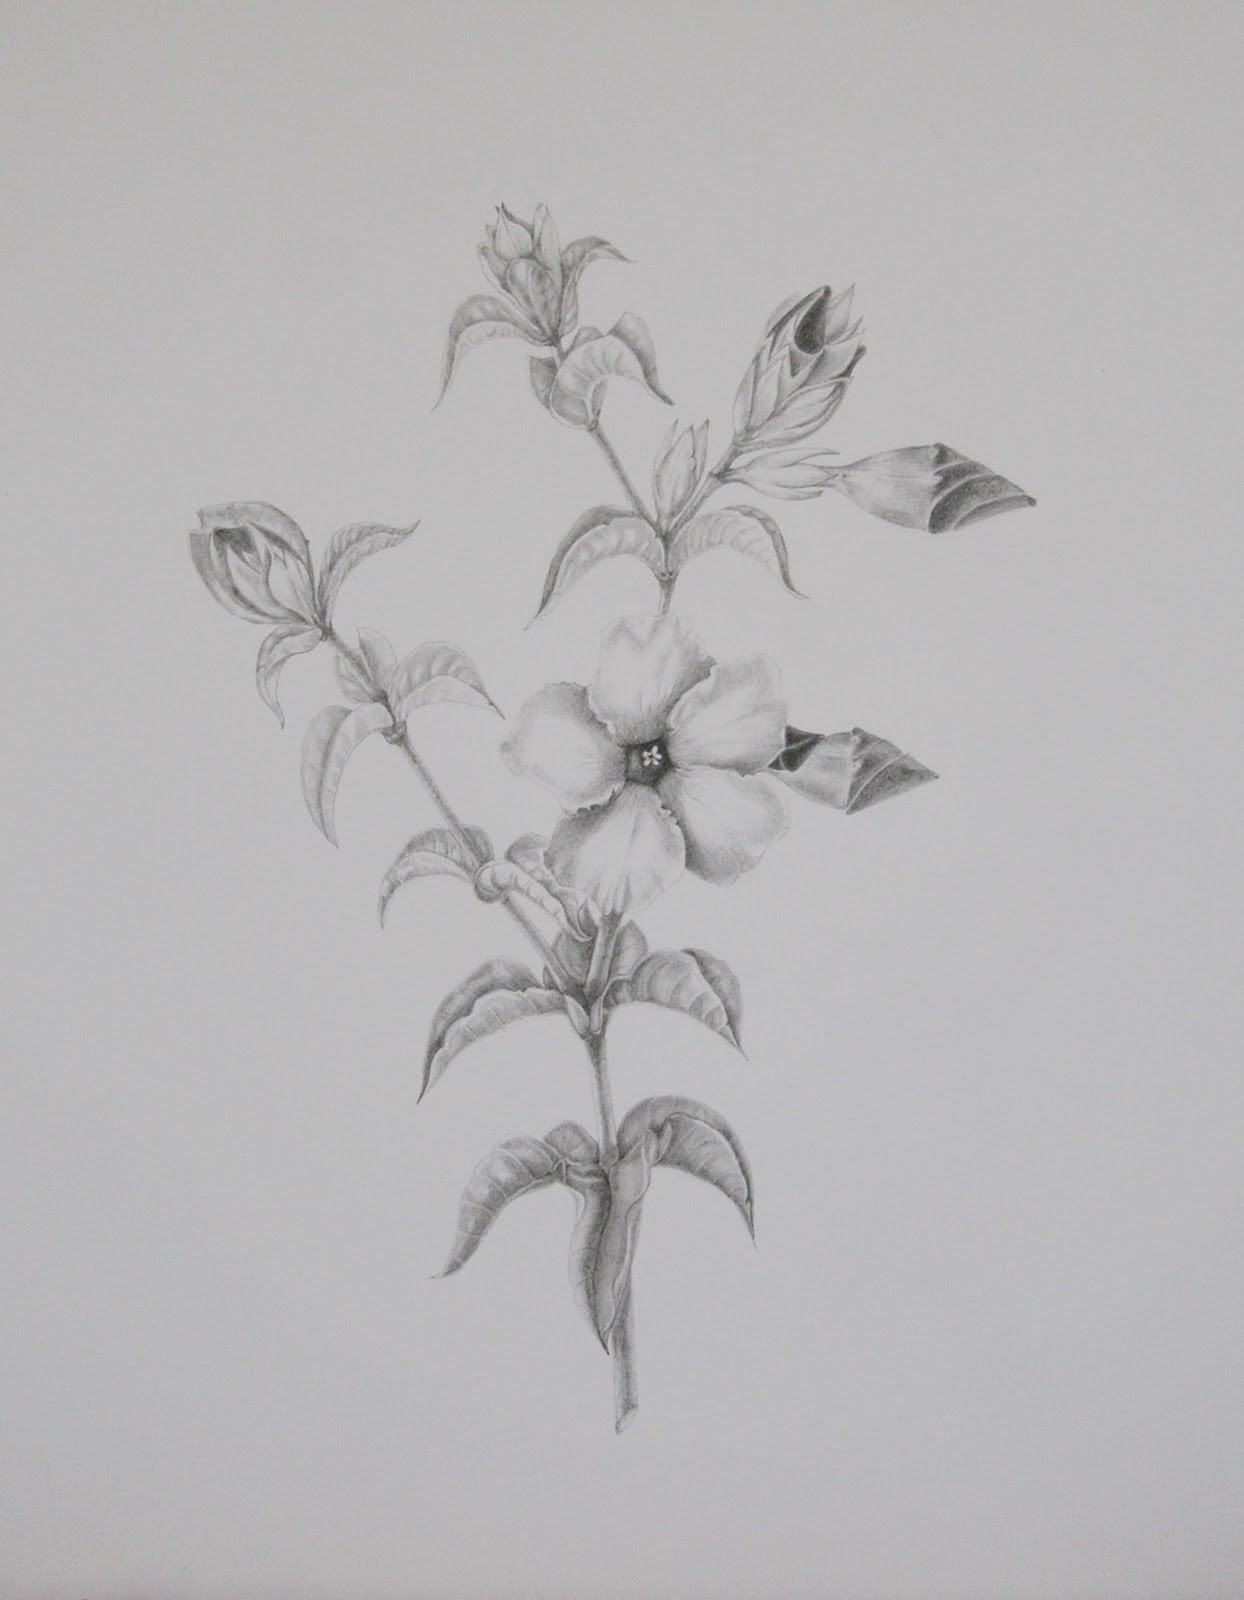 Hawaiian Flower Drawings In Pencil I chose a hibiscus from our